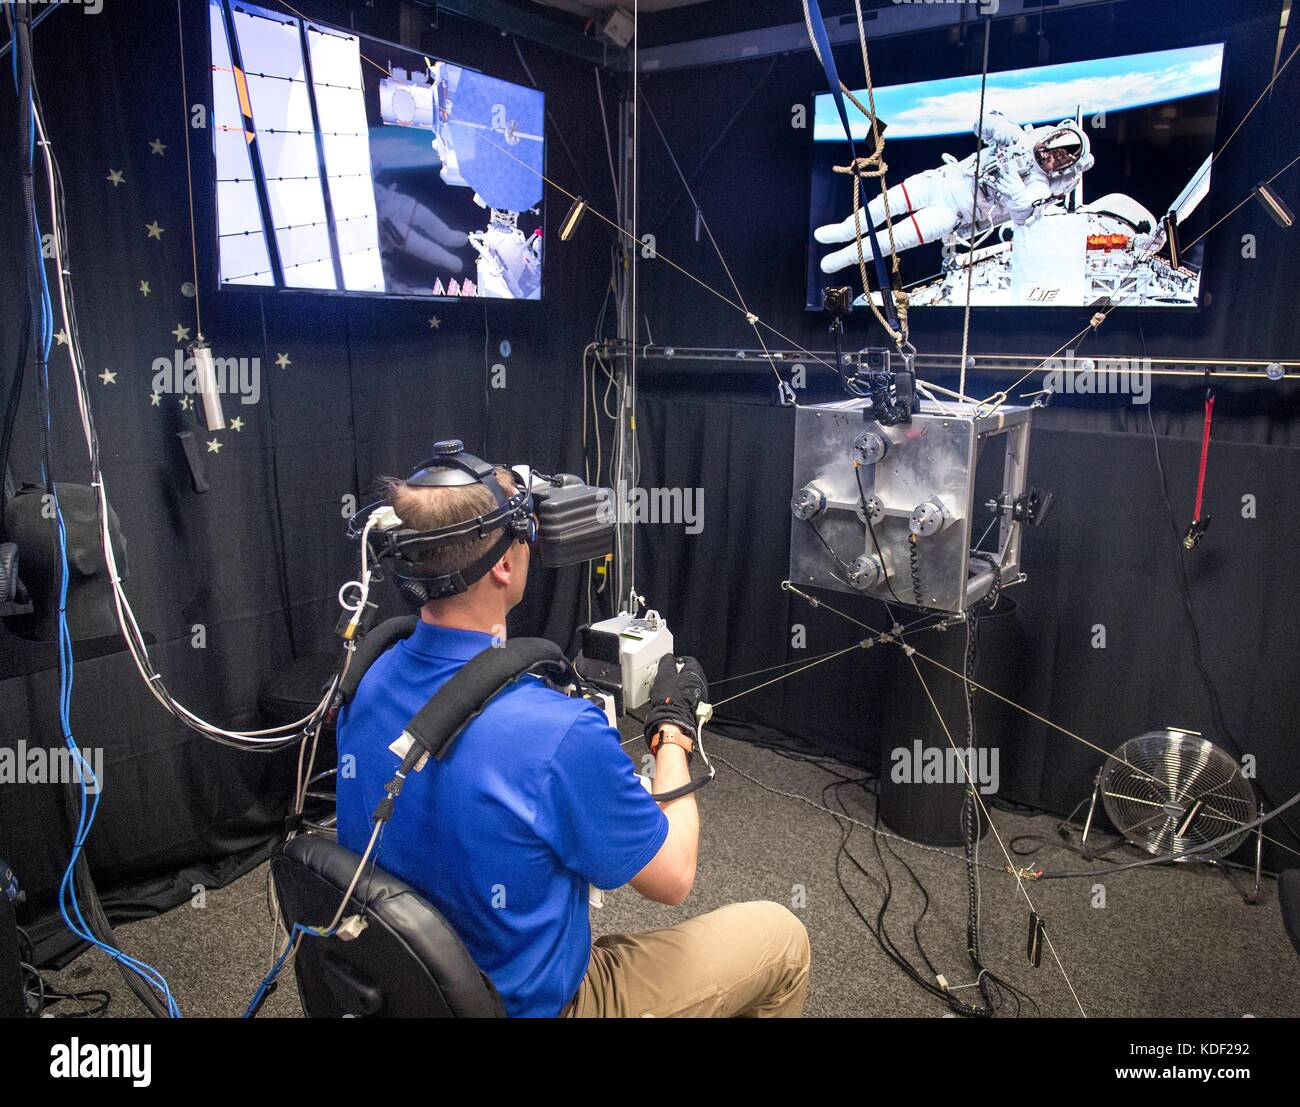 NASA astronaut Nick Hague uses a virtual reality simulator during a